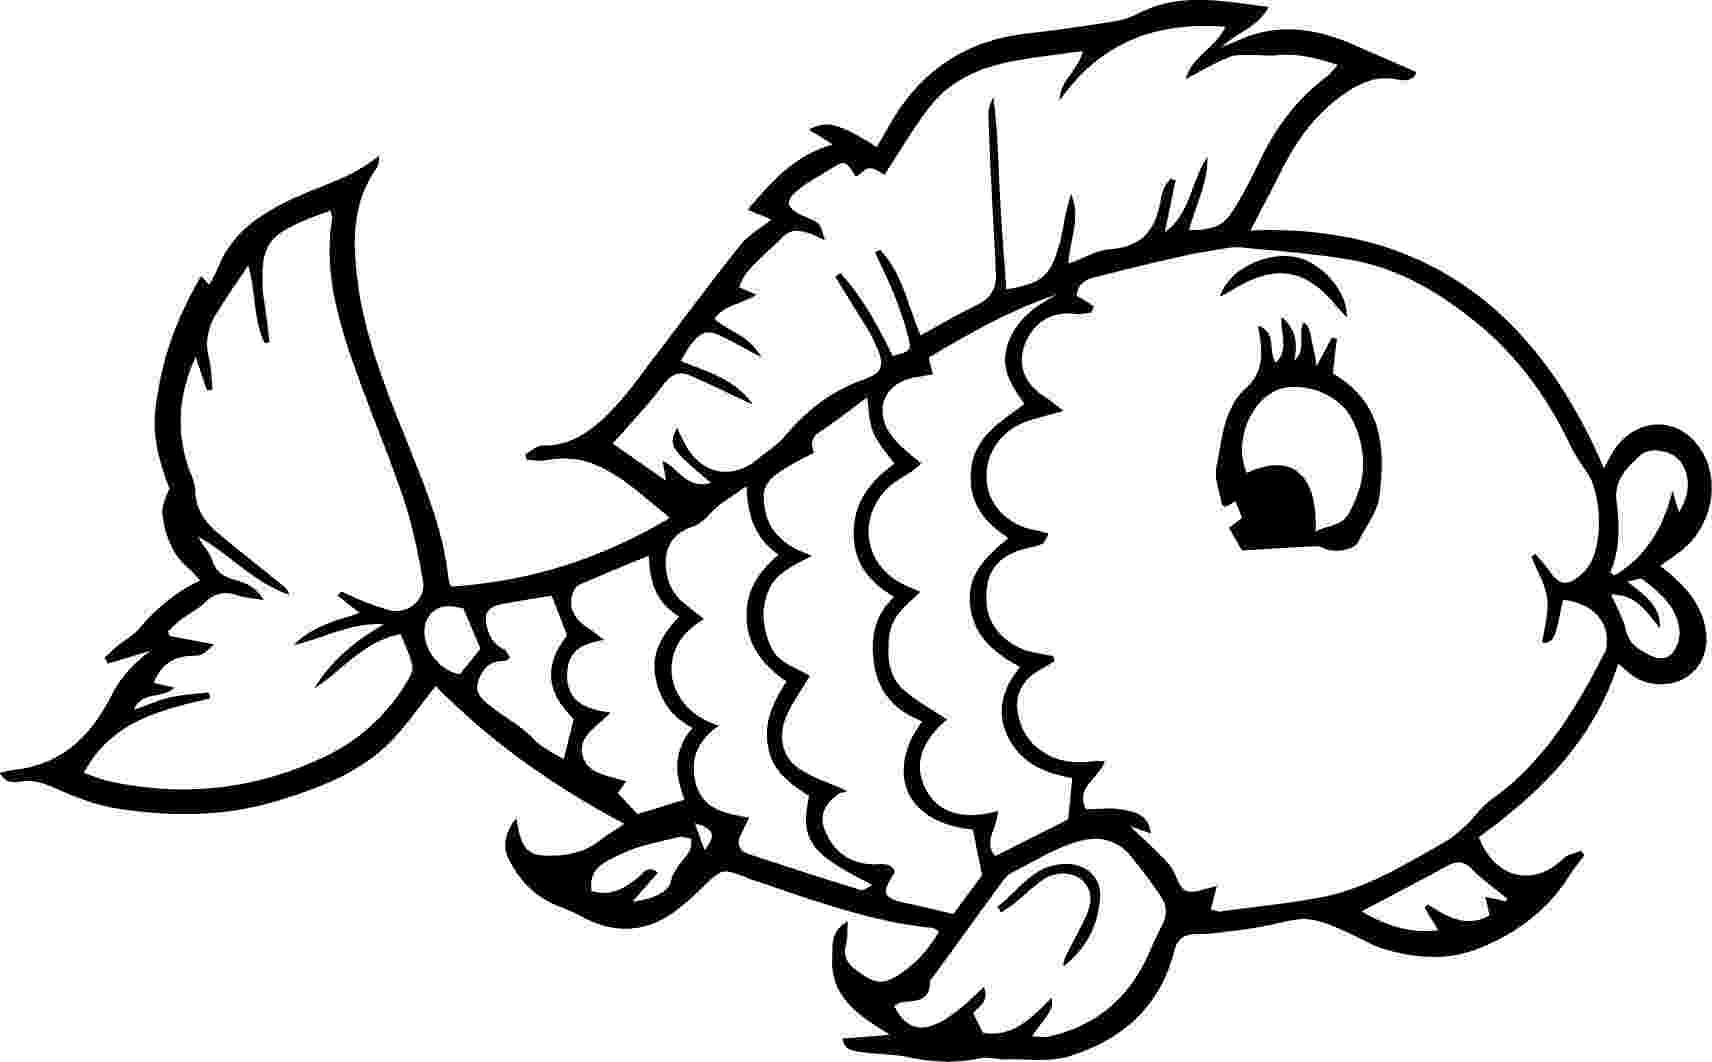 fish cartoon coloring pages 8 fish coloring pages jpg ai illustrator free fish cartoon pages coloring